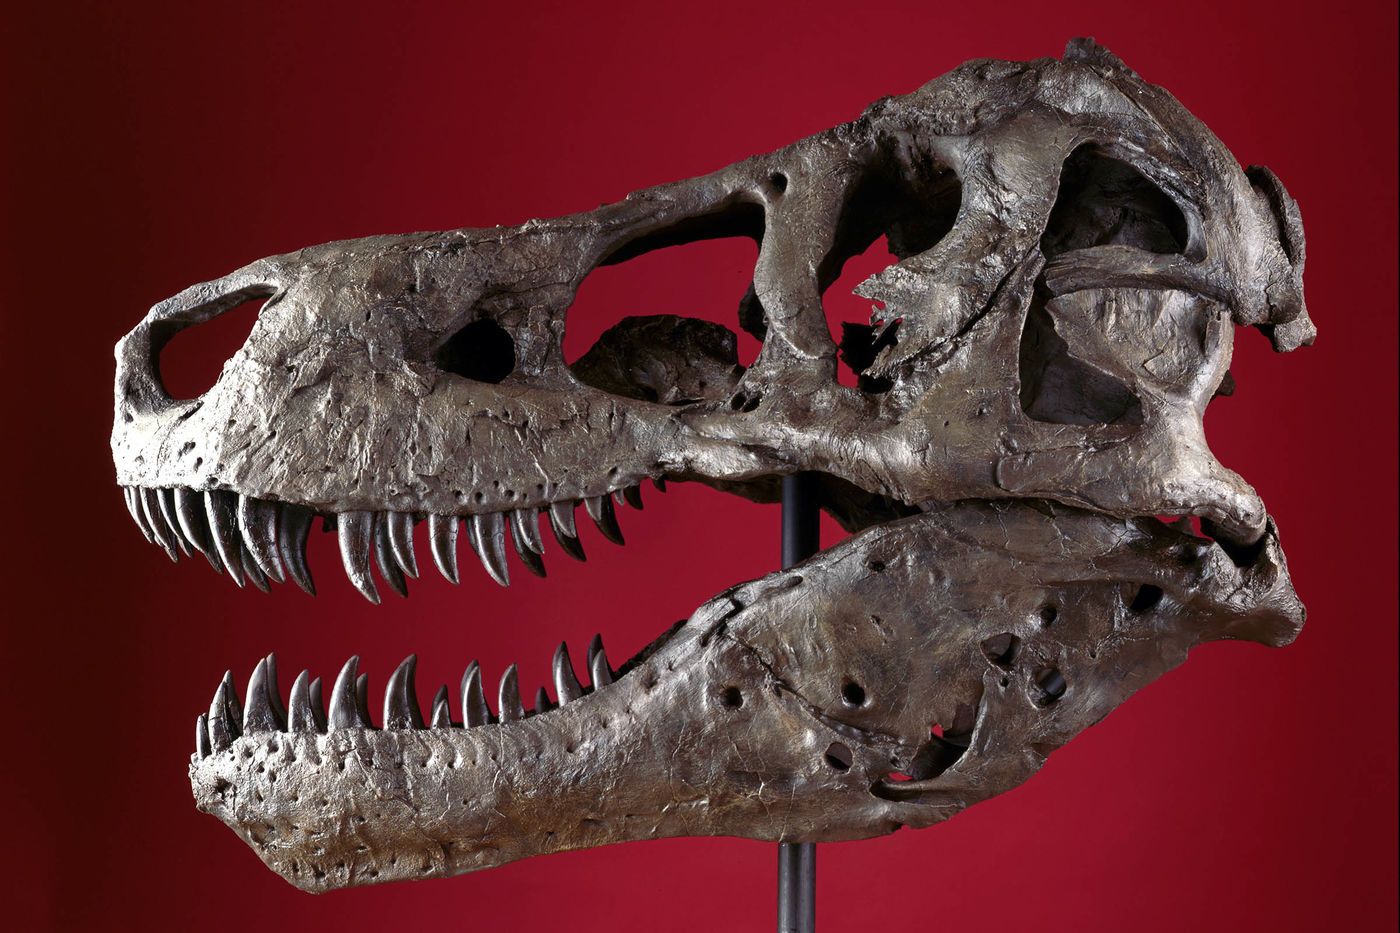 Side view of a Tyrannosaurus rex skull mounted on a pole, in front of a dark red background. The skull is brown in color and a little bit shiny, and its mouth is slightly open showing rows of sharp, curved teeth.